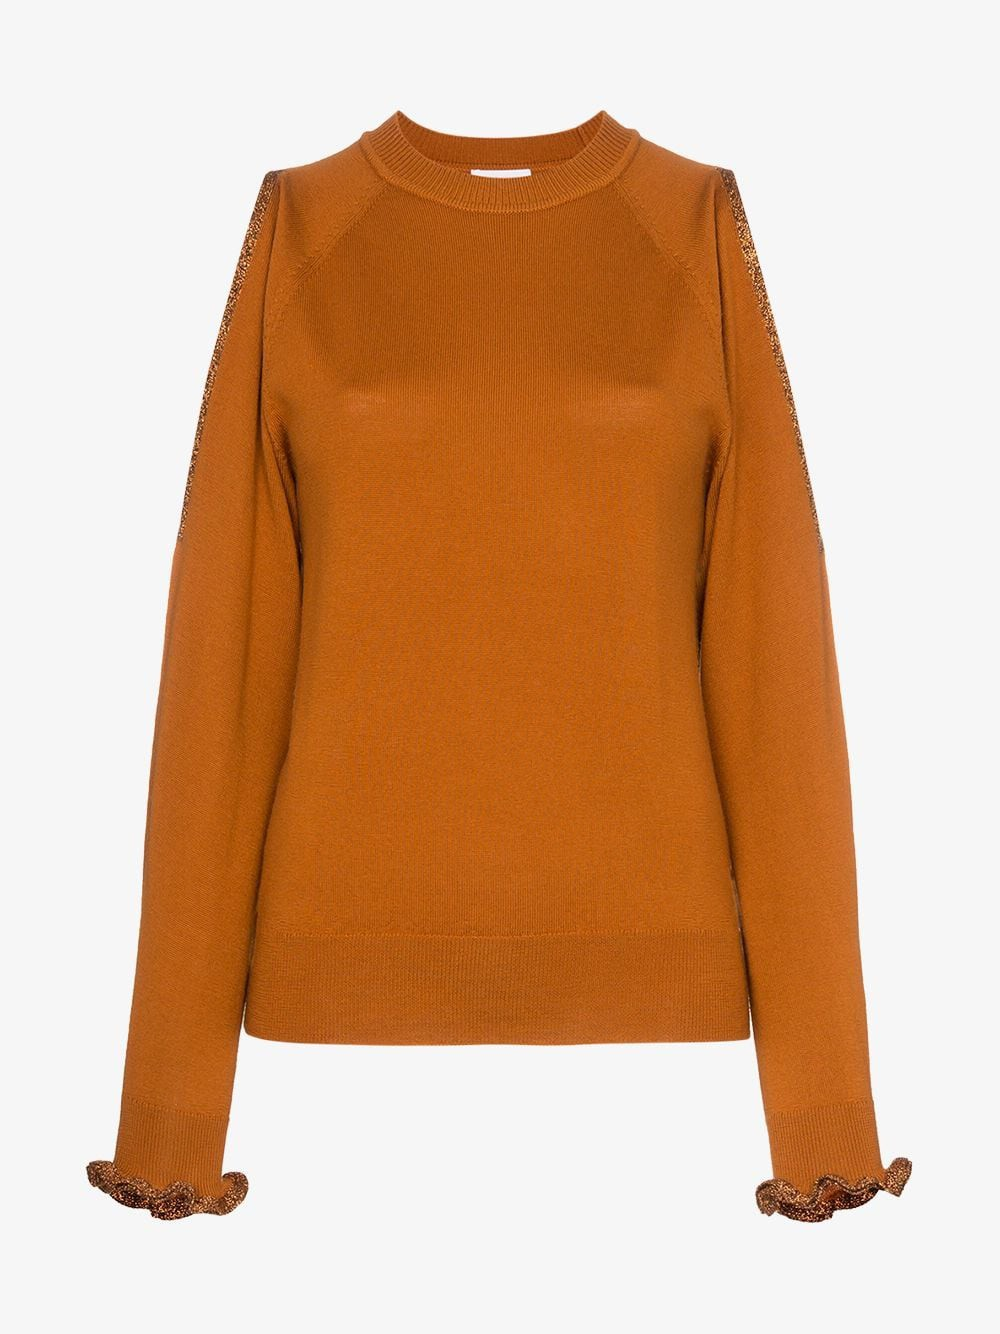 See By Chloé See By Chloé cut out shoulder wool jumper in orange